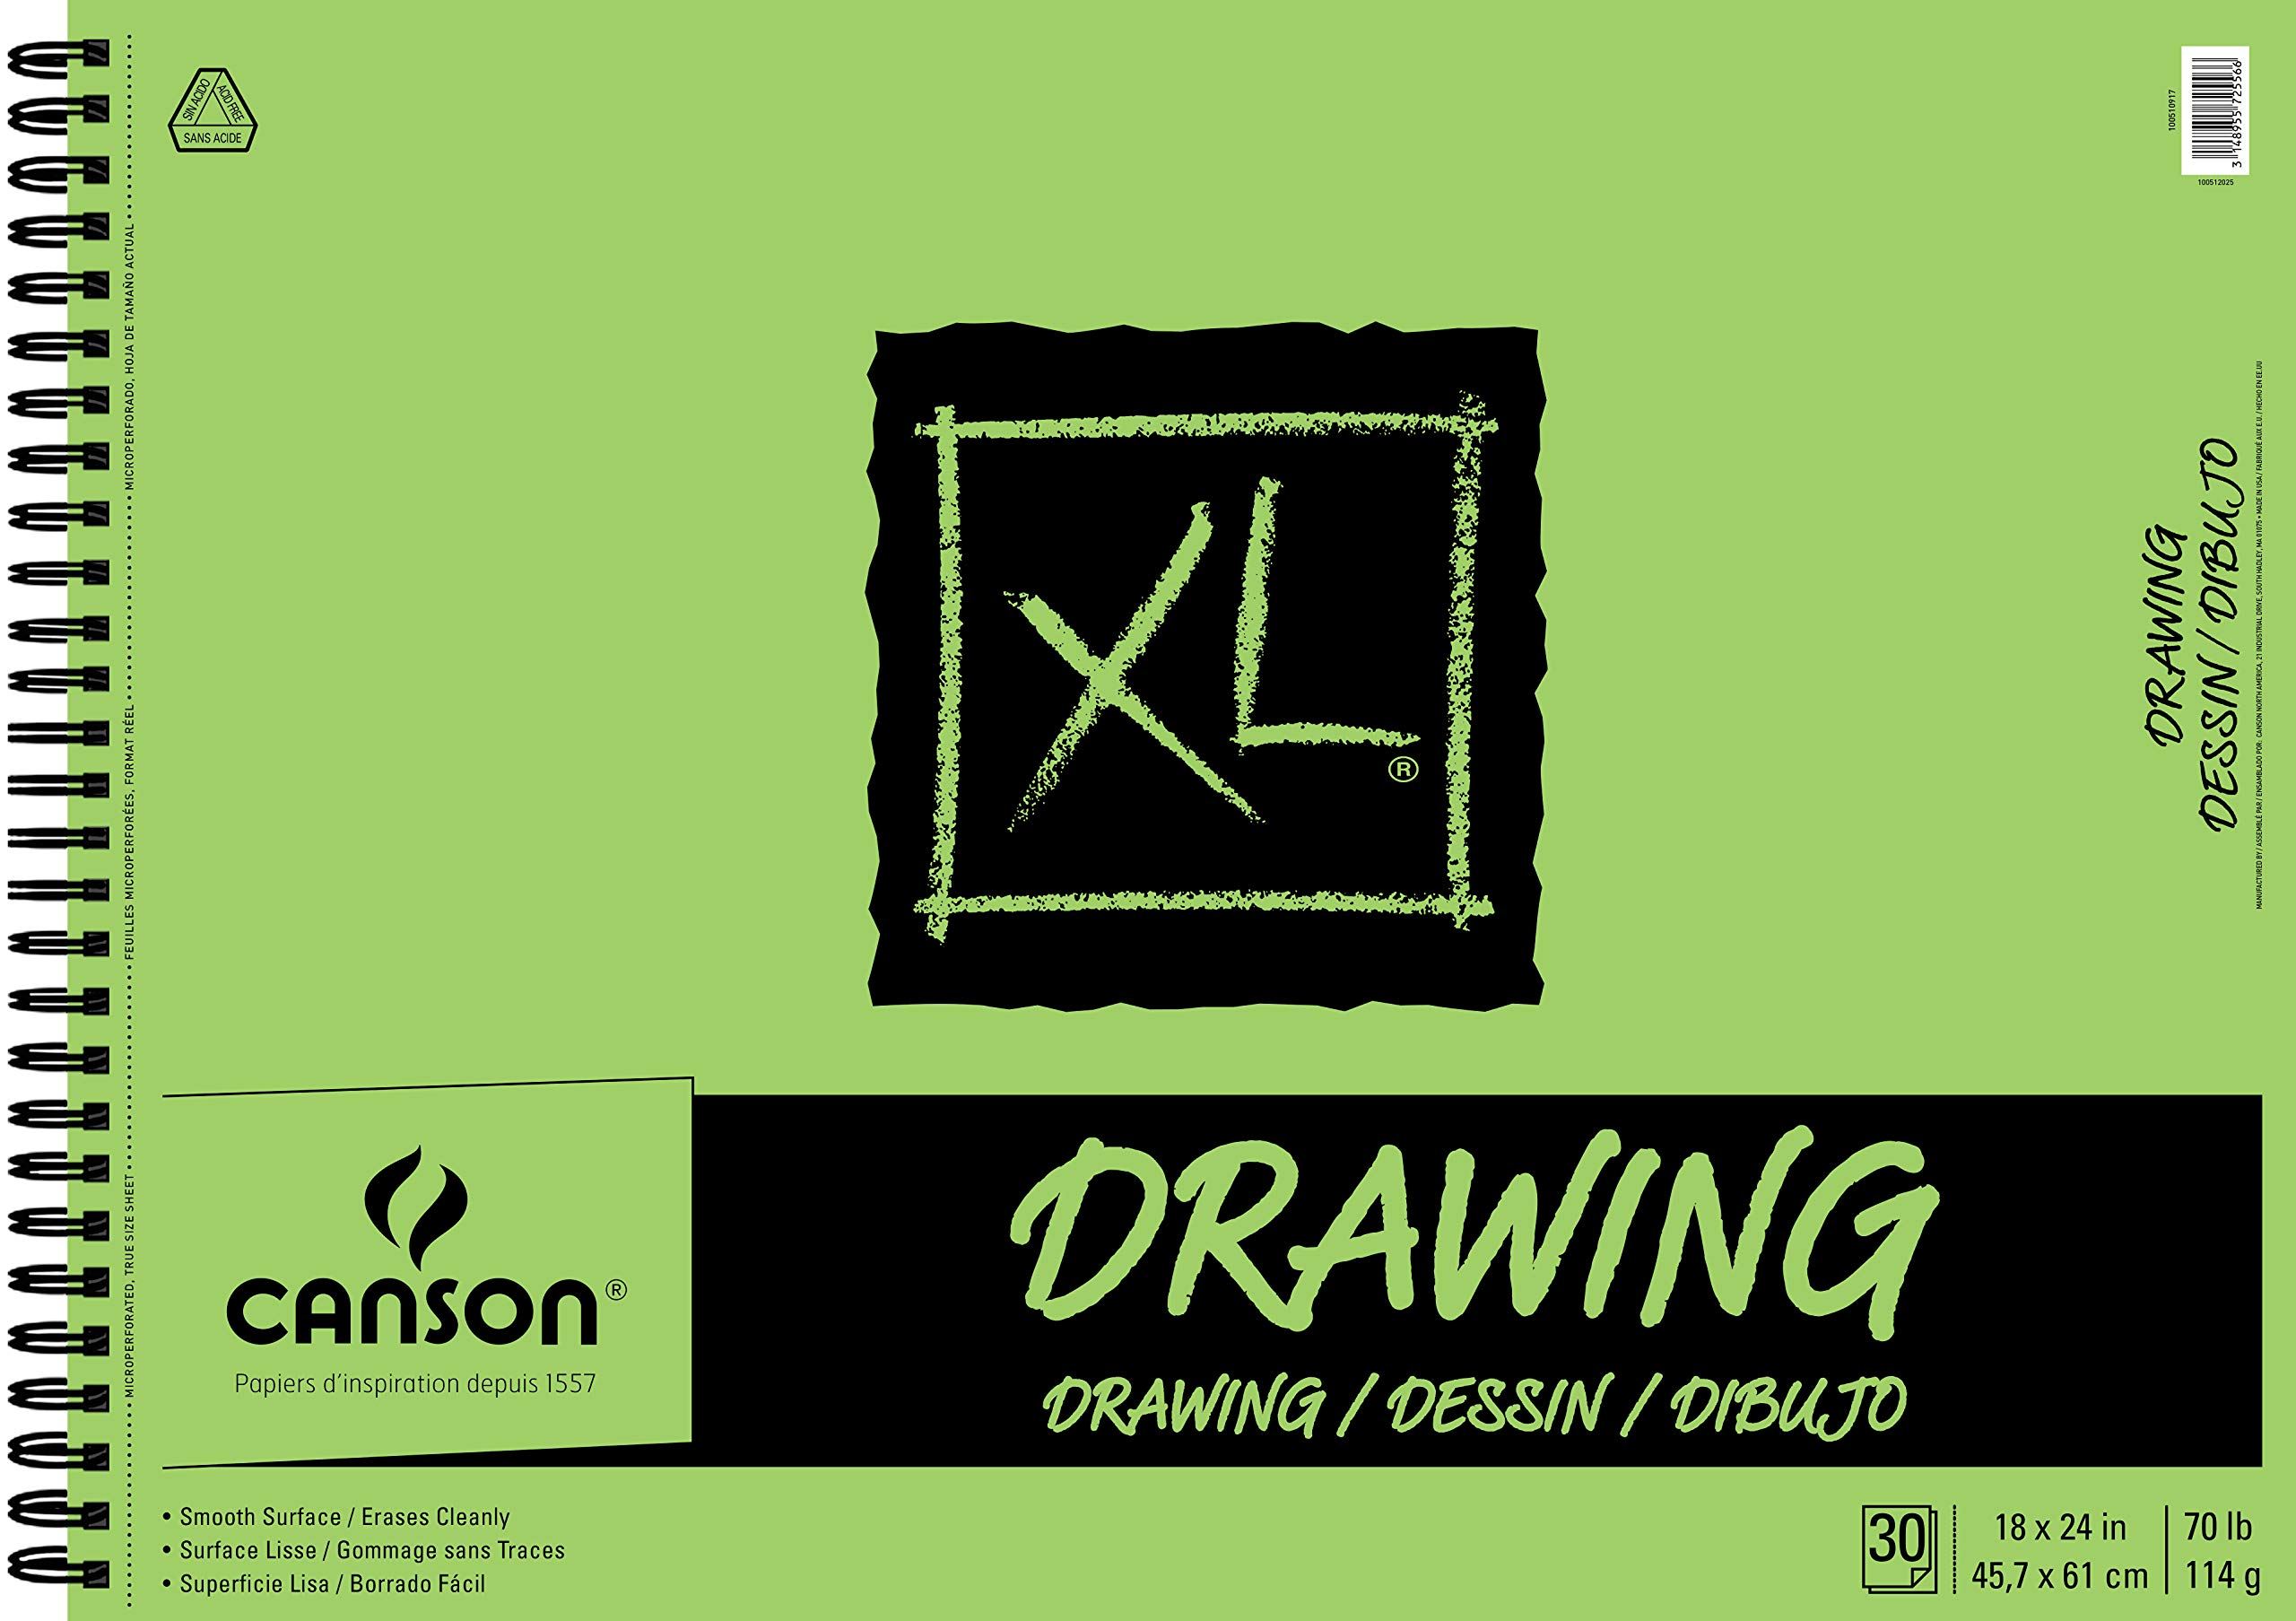 Canson XL Series Drawing Paper Pad, Micro Perforated, Smooth Surface, Side Wire Bound, 70 Pound, 18 x 24 Inch, 30 Sheets by Canson